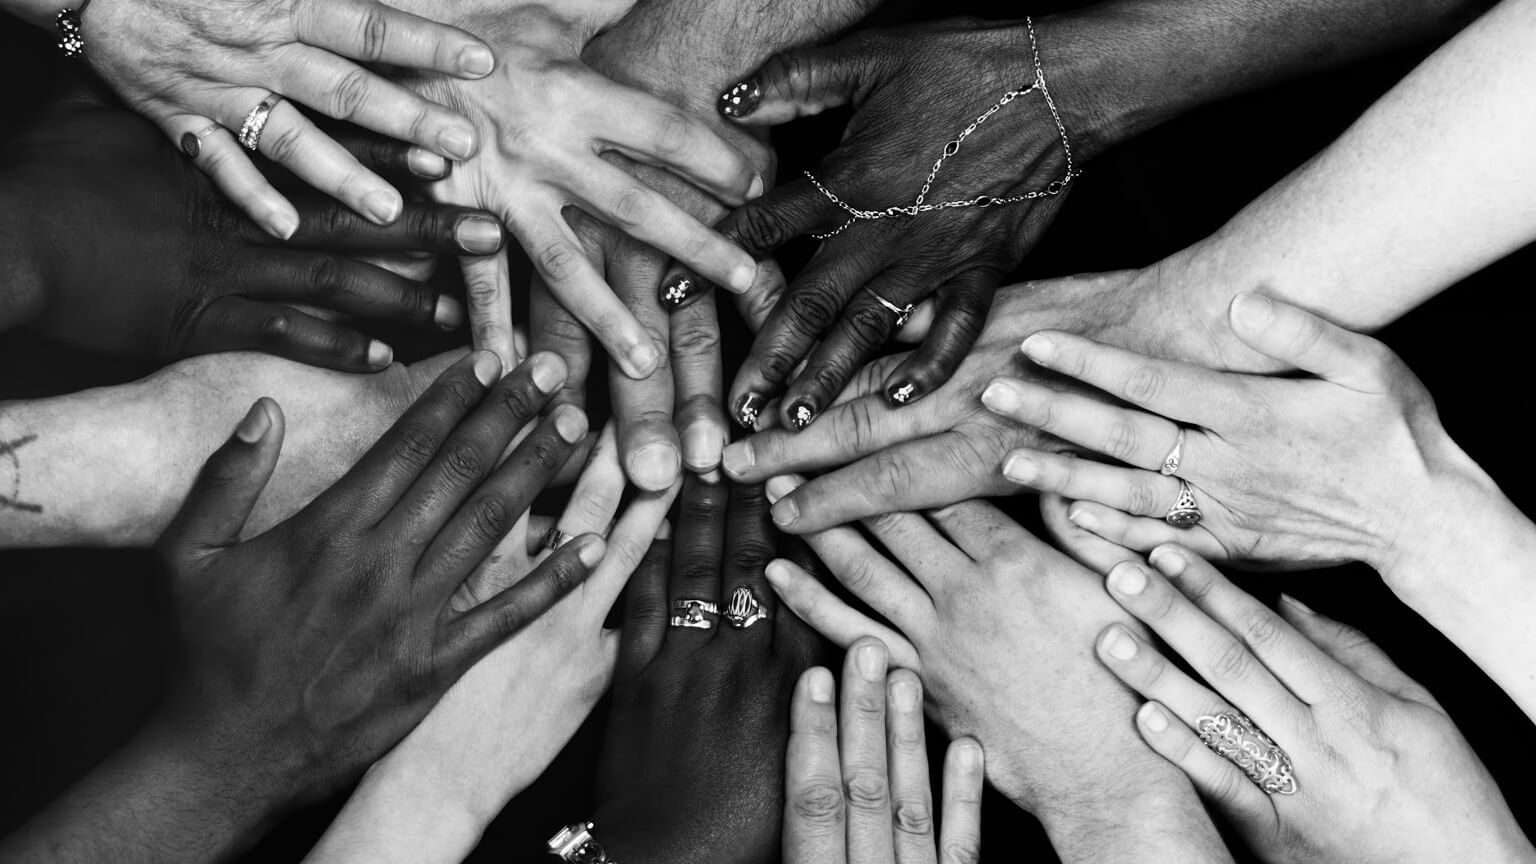 a black and white photo with multiple hands of all ethnicities signifying equality